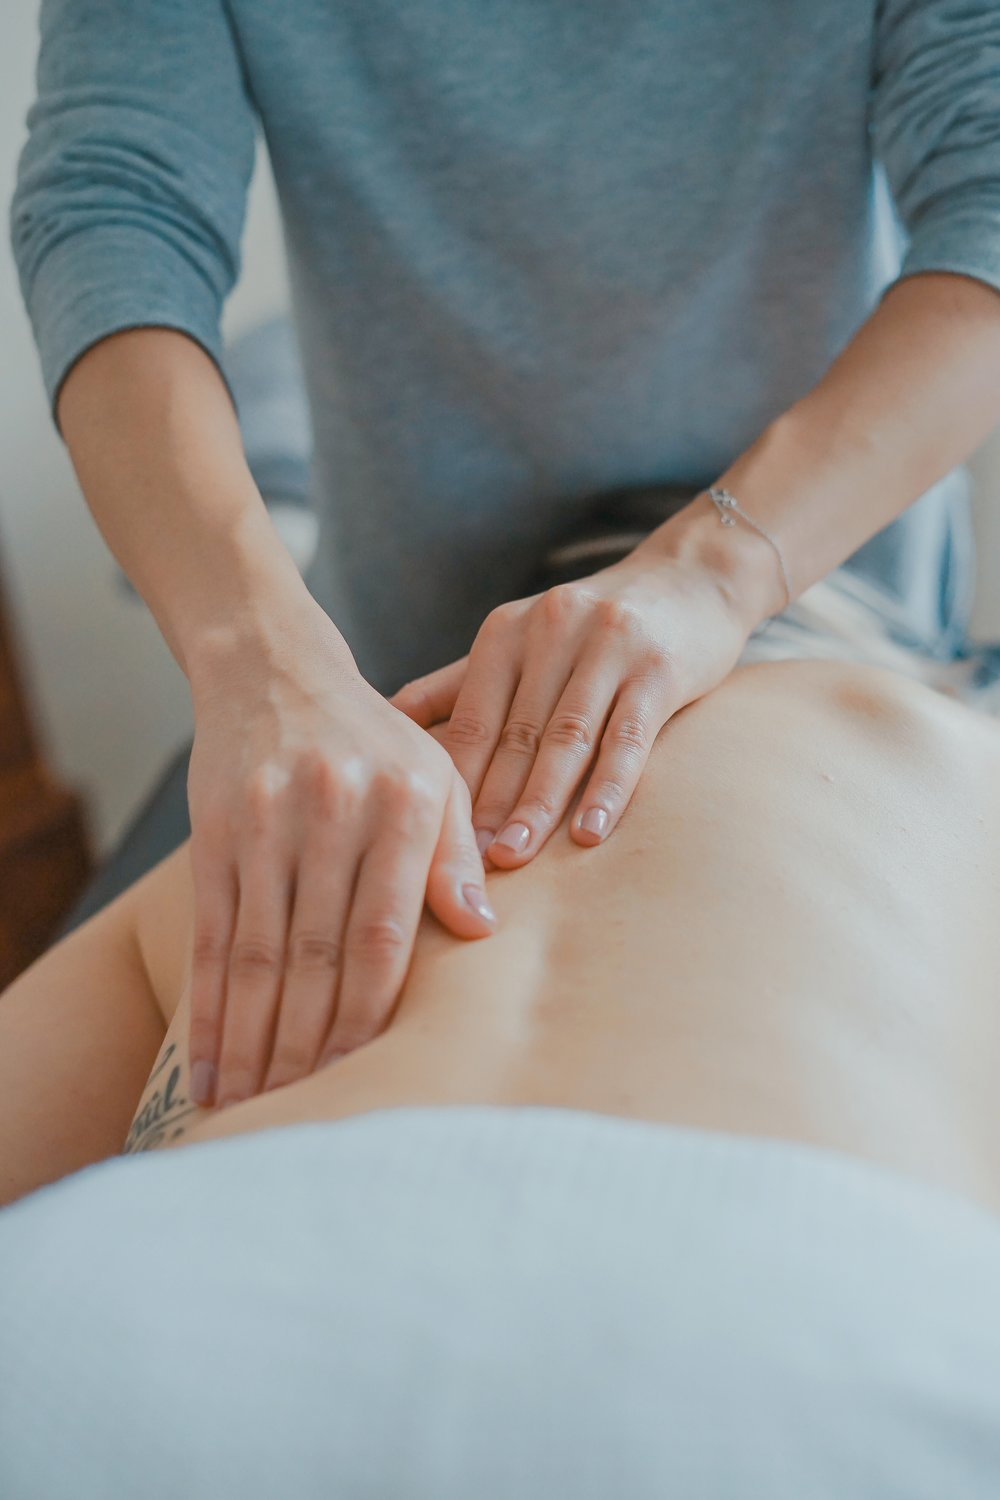 massage-therapies-jpg